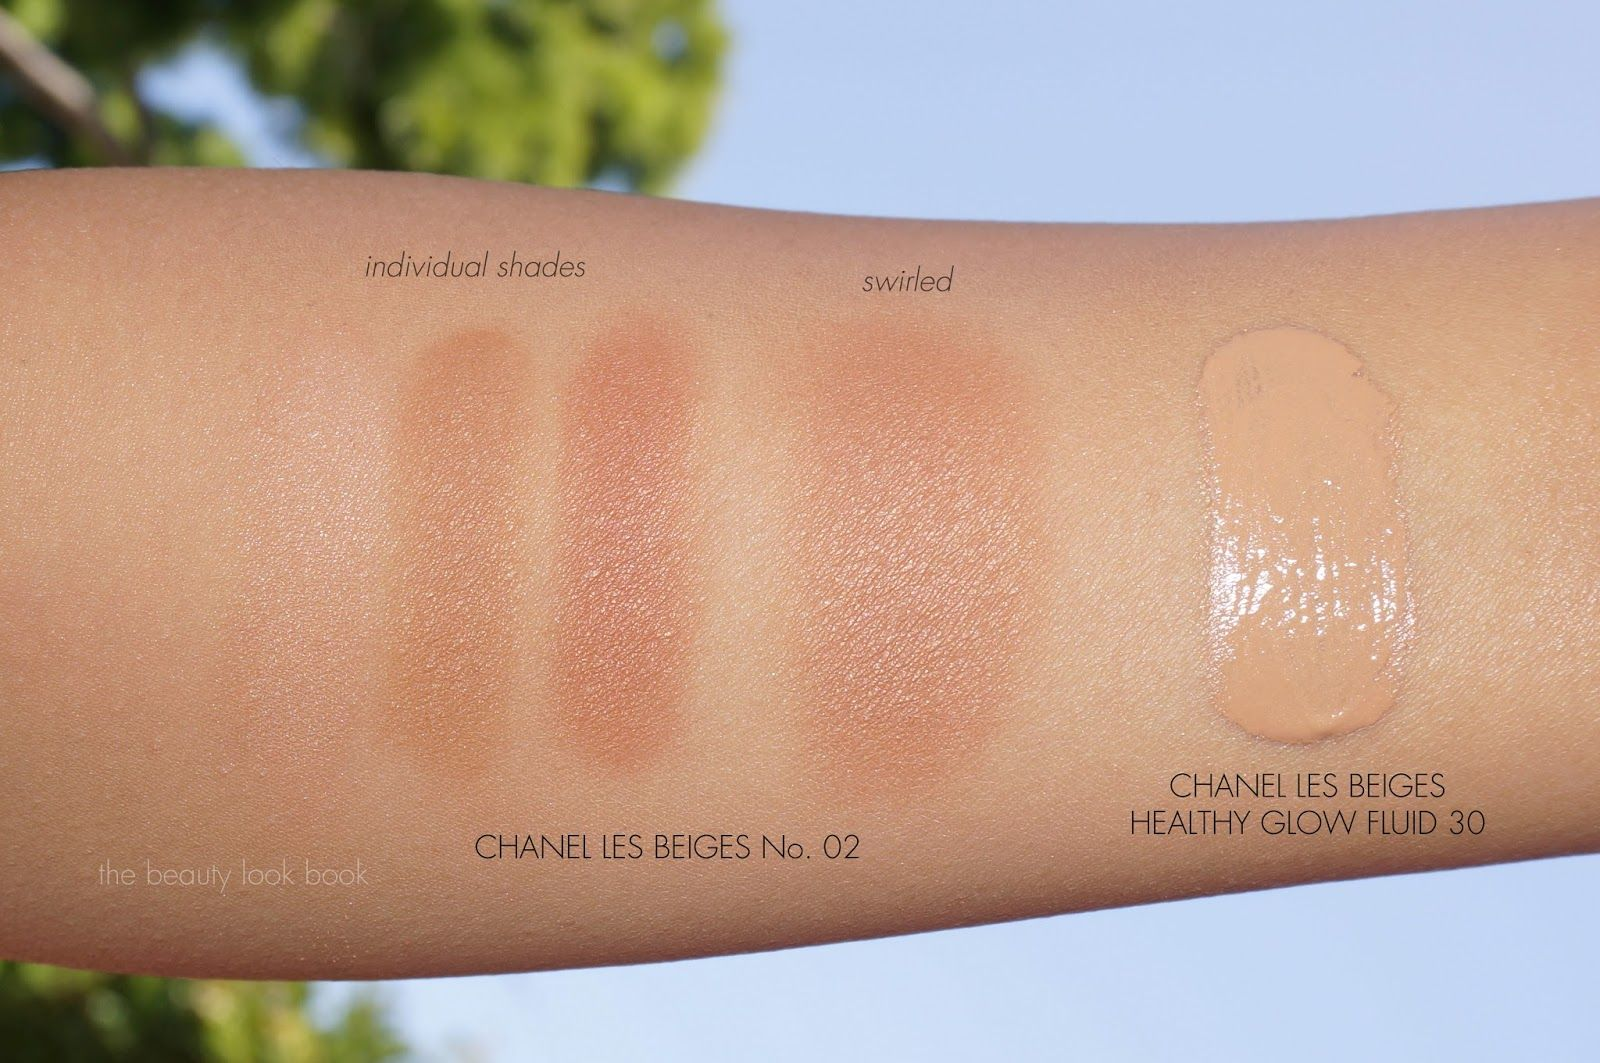 Chanel Les Beiges Healthy Glow MultiColour No. 02